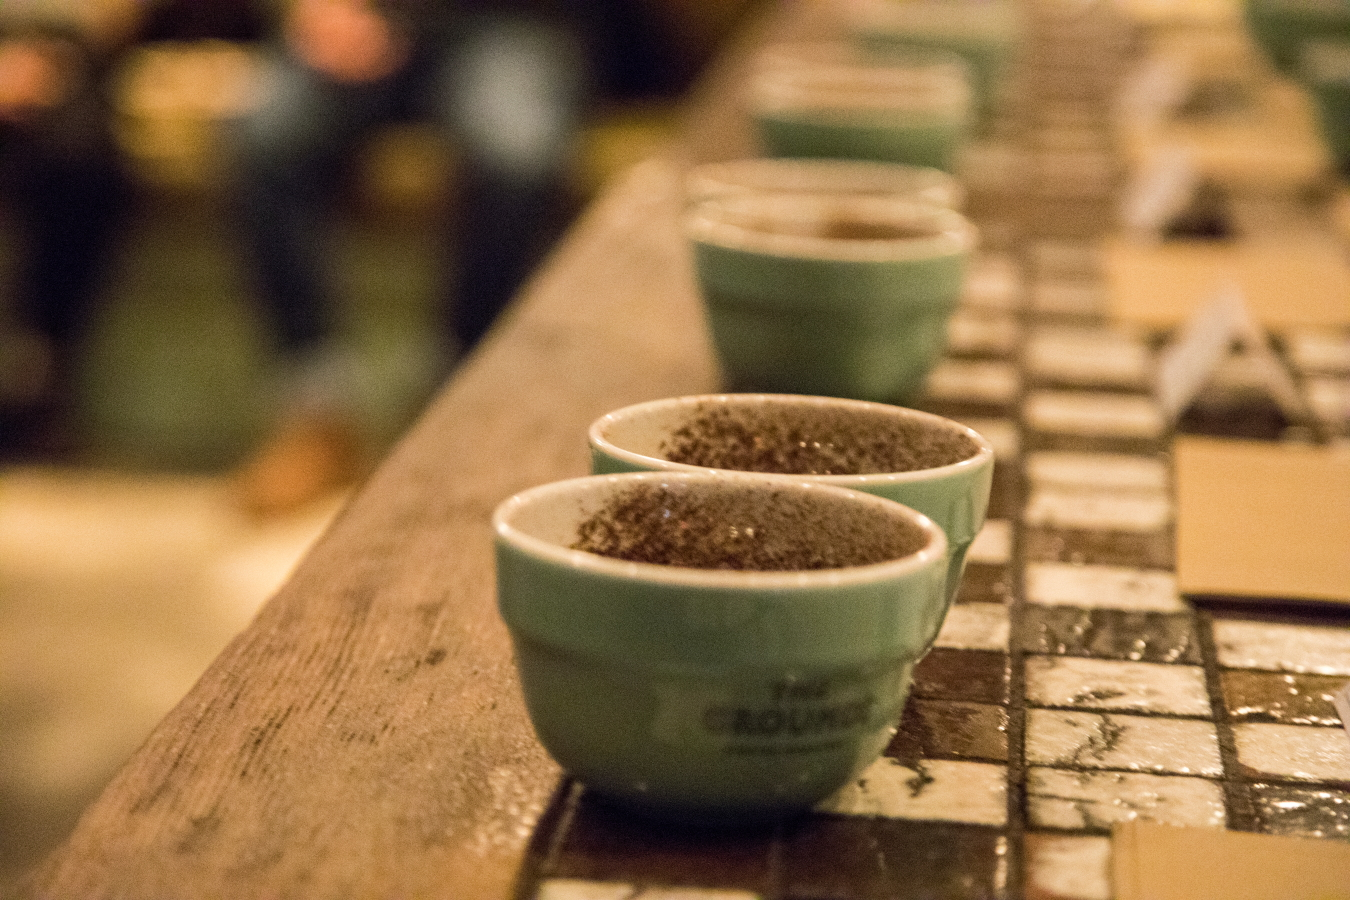 grounds cupping21byo.JPG